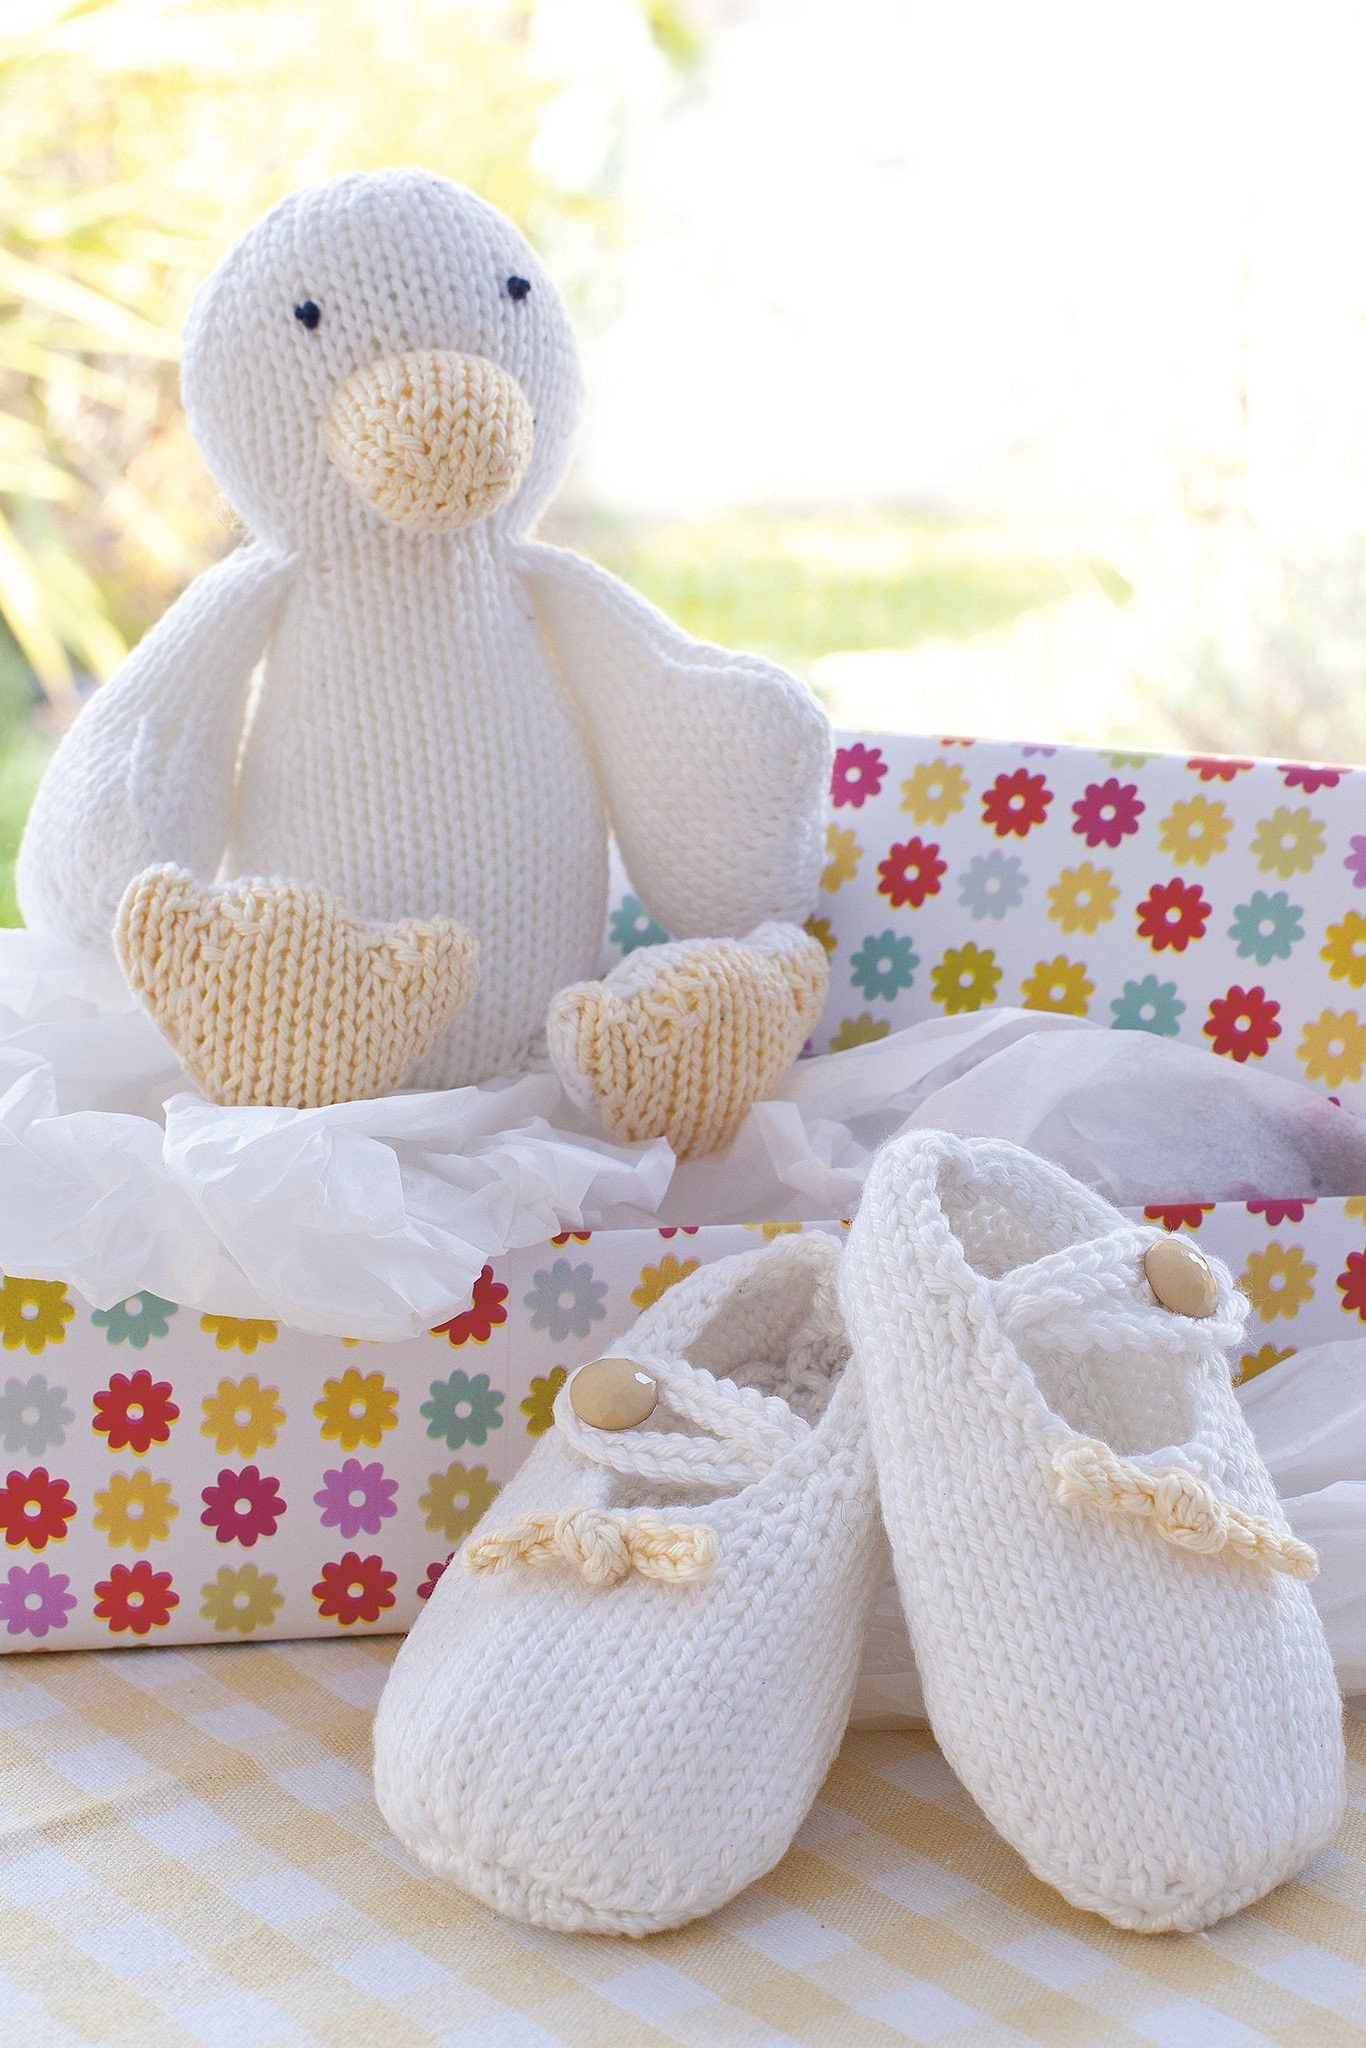 Baby Booties And Duck Knitting Patterns